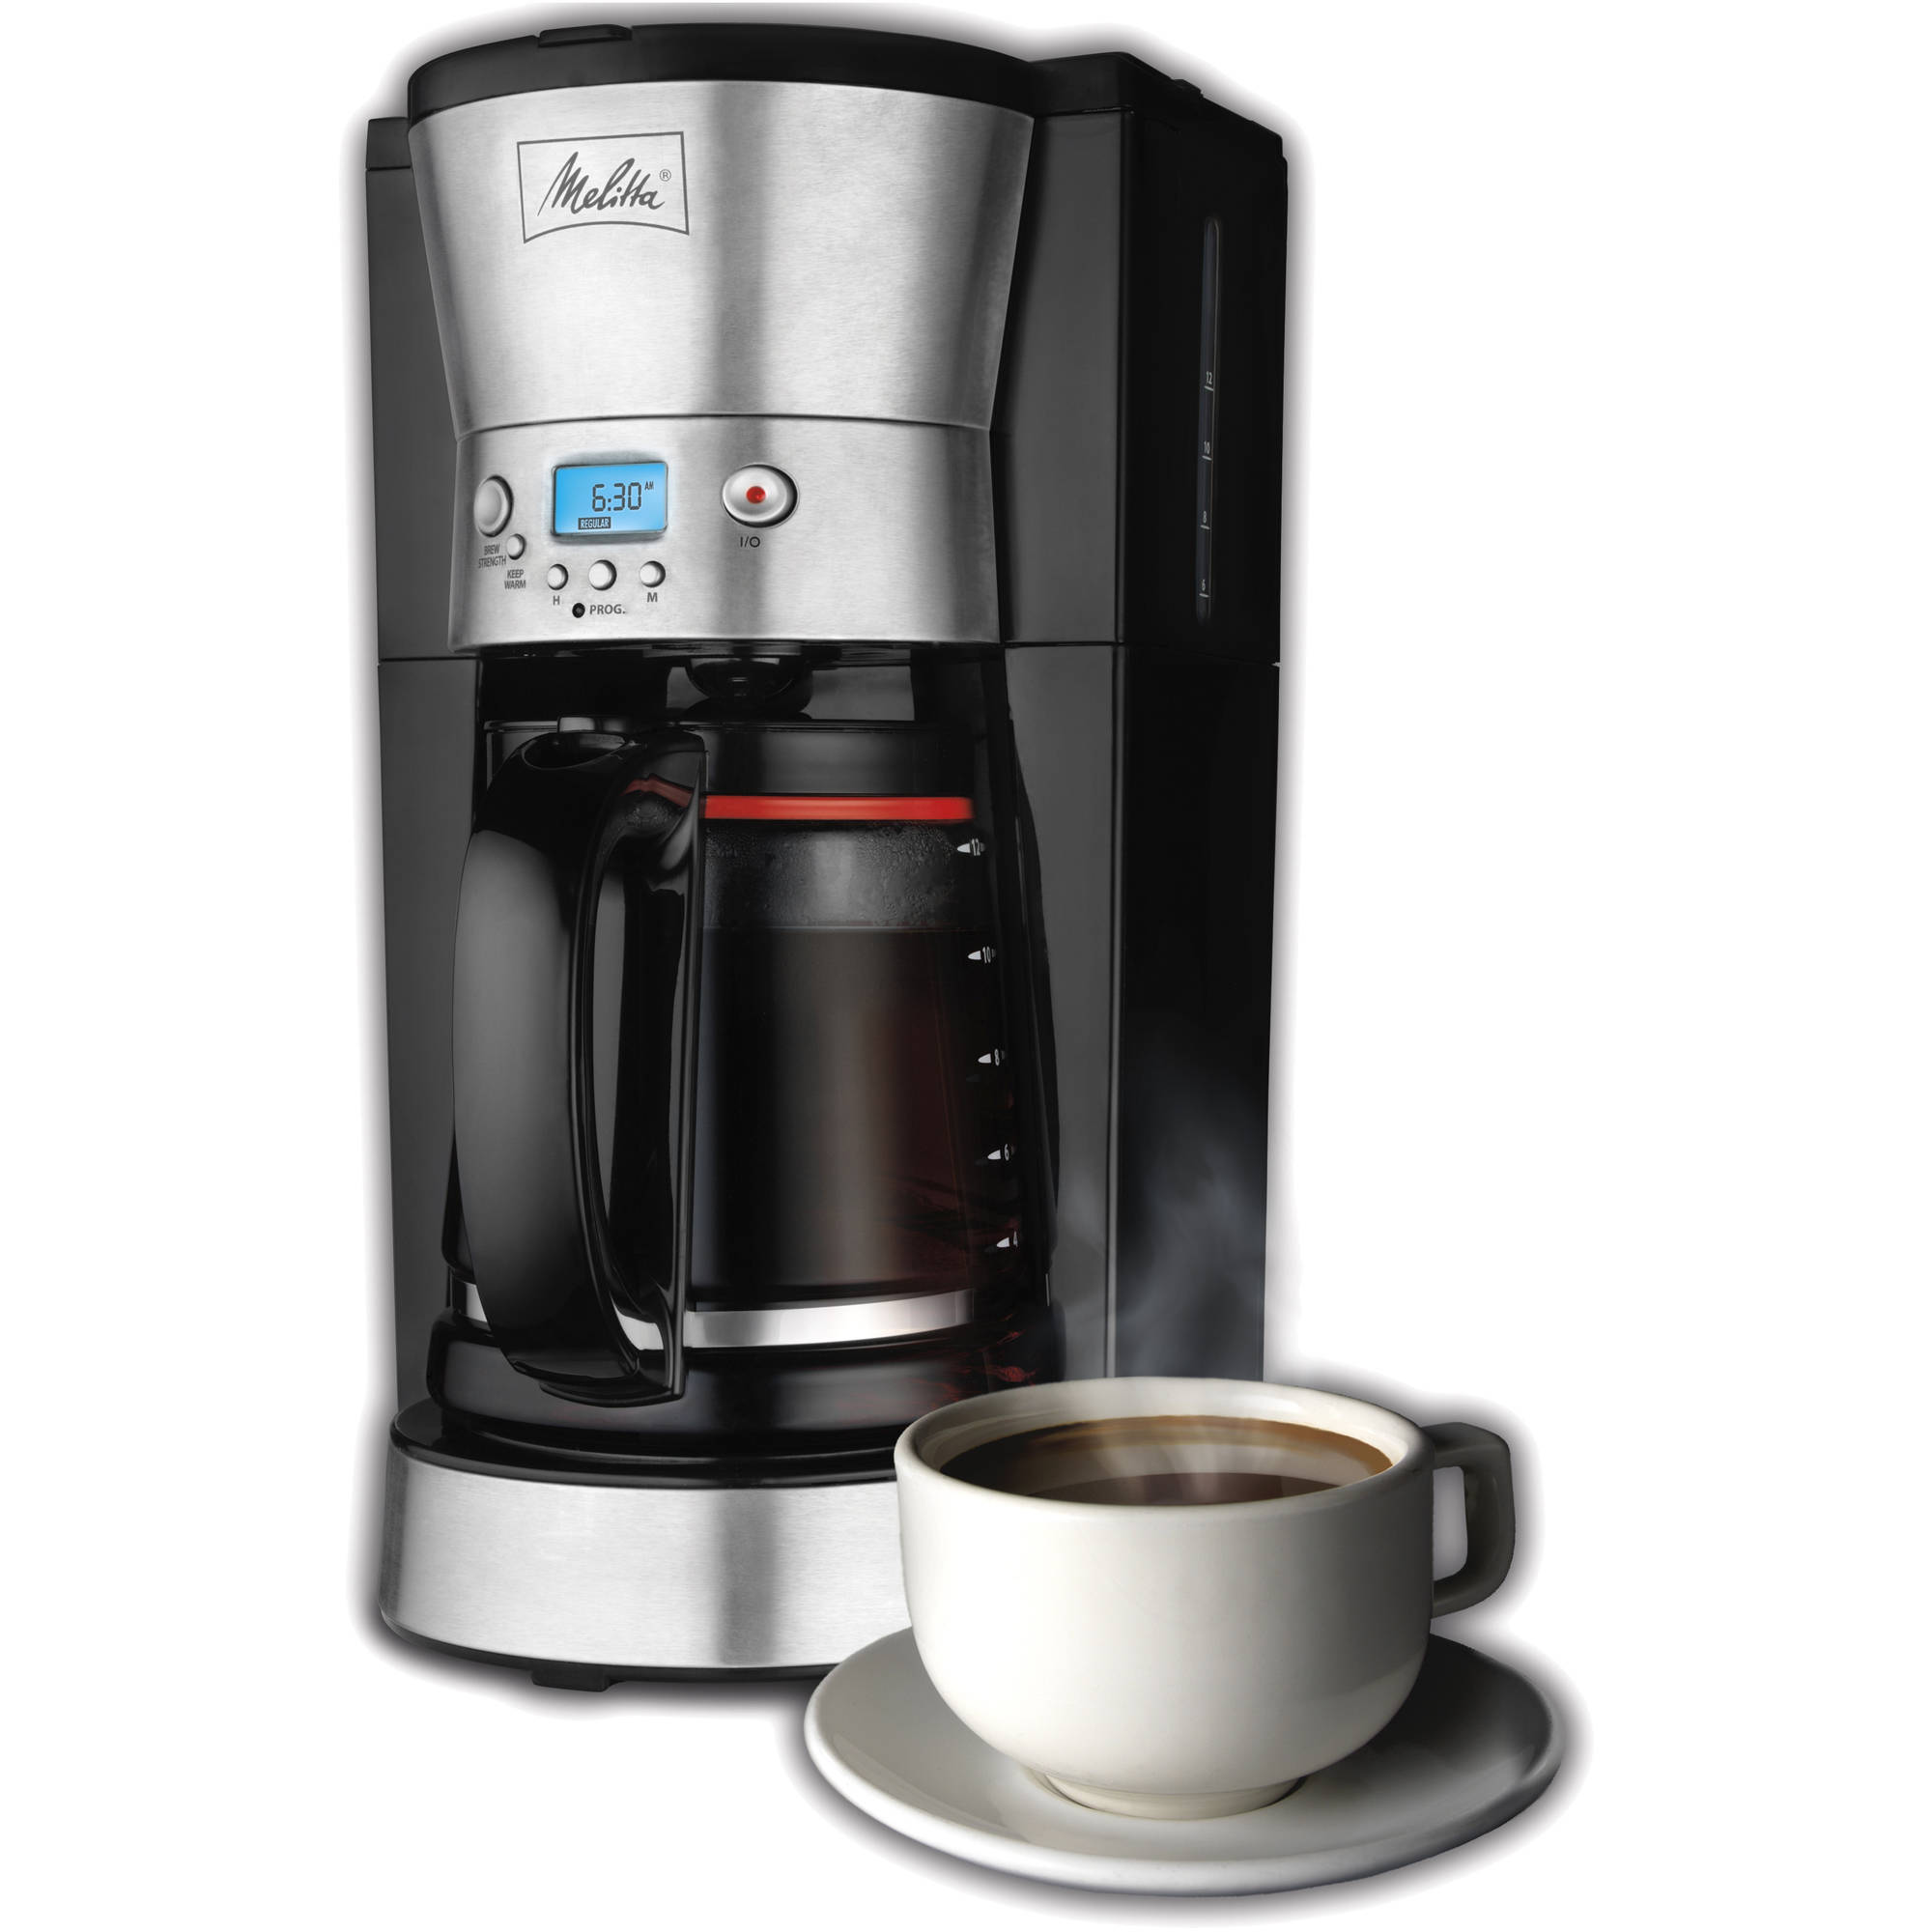 Black amp decker 12 cup coffee maker free shipping on orders over 45 - Melitta 12 Cup Coffee Maker 46893 Black Stainless Steel